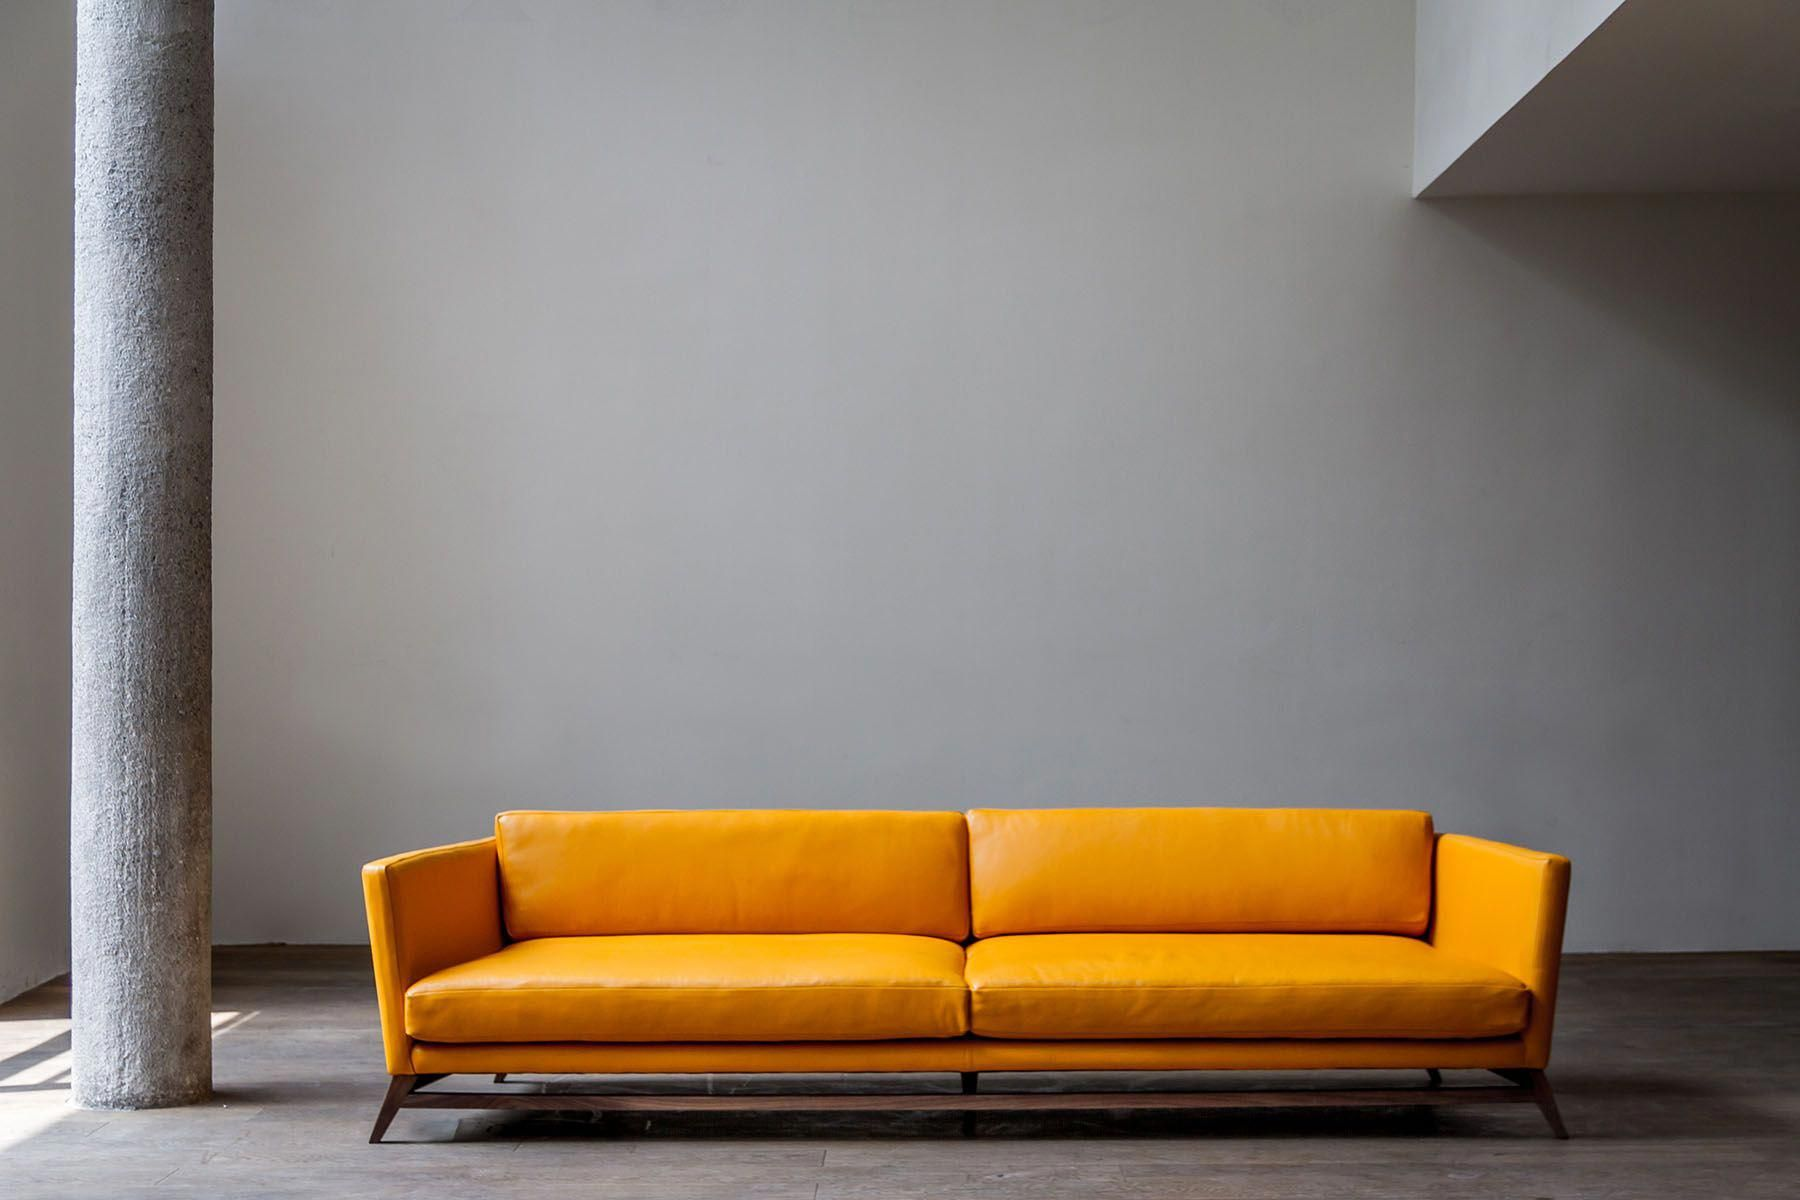 Luteca Eclipse Sofa Leather And Wood Available Upon Order At Atelier Courbet Www Ateliercourbet Com Furniture Modern Sofa Designs Best Leather Sofa